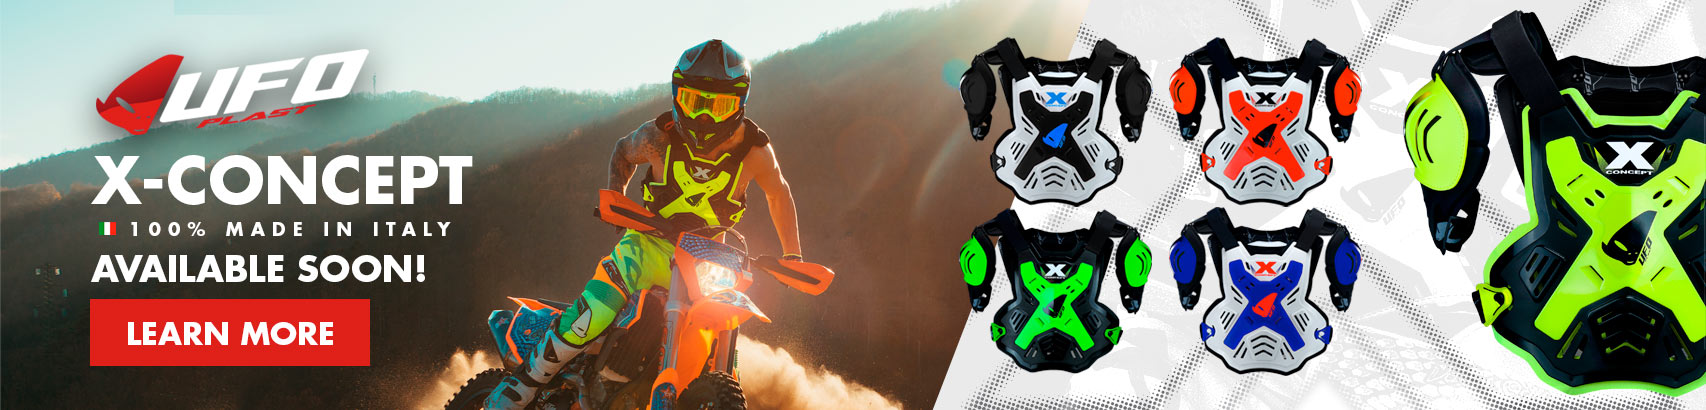 2018 UFO X-Concept Chest Protector